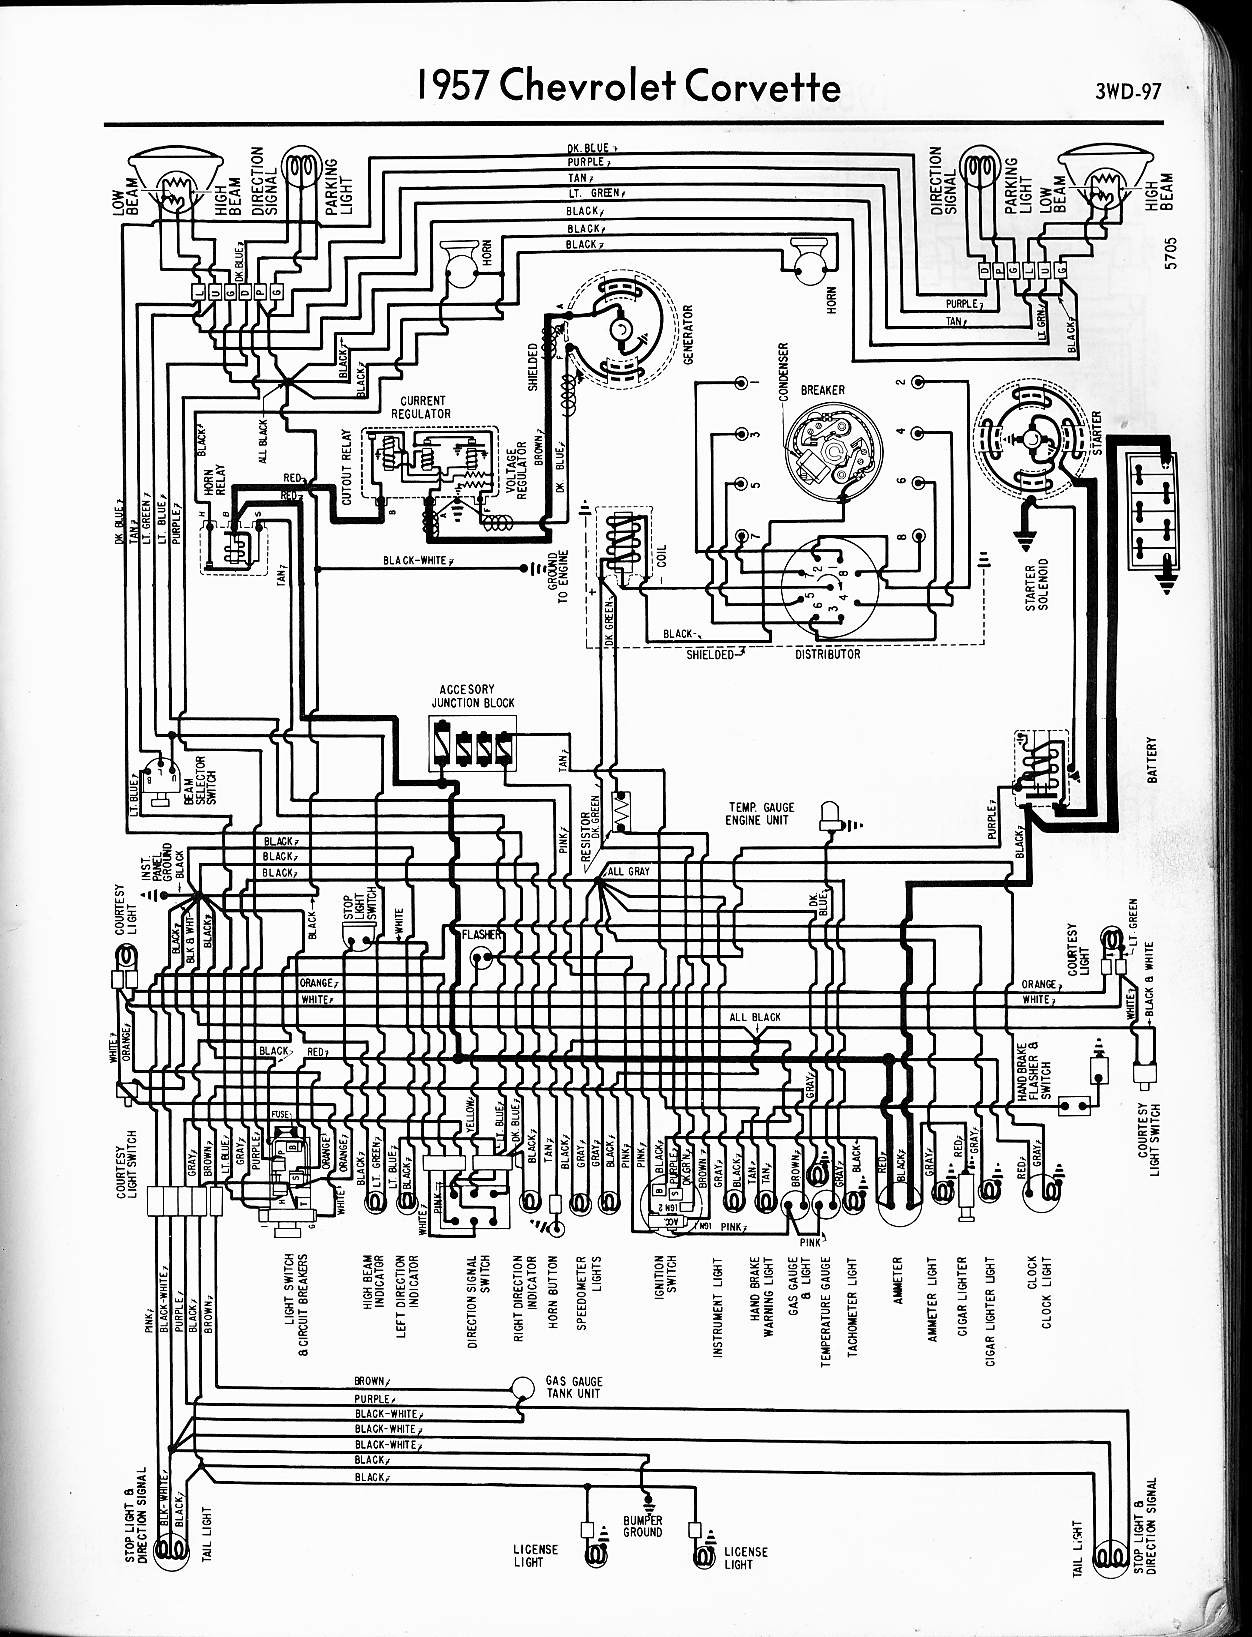 1957 Chevy Truck Wiring Diagram 57 65 Chevy Wiring Diagrams Of 1957 Chevy Truck Wiring Diagram